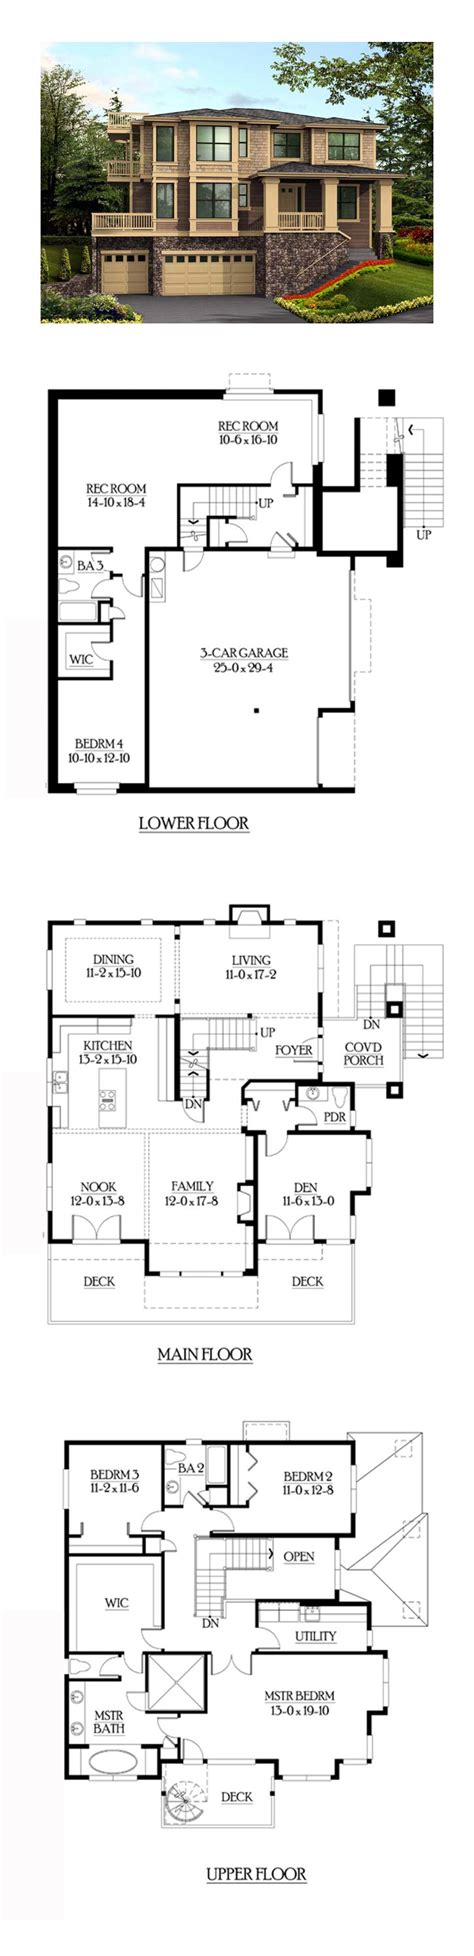 house plans with basements best 25 basement house plans ideas on pinterest house